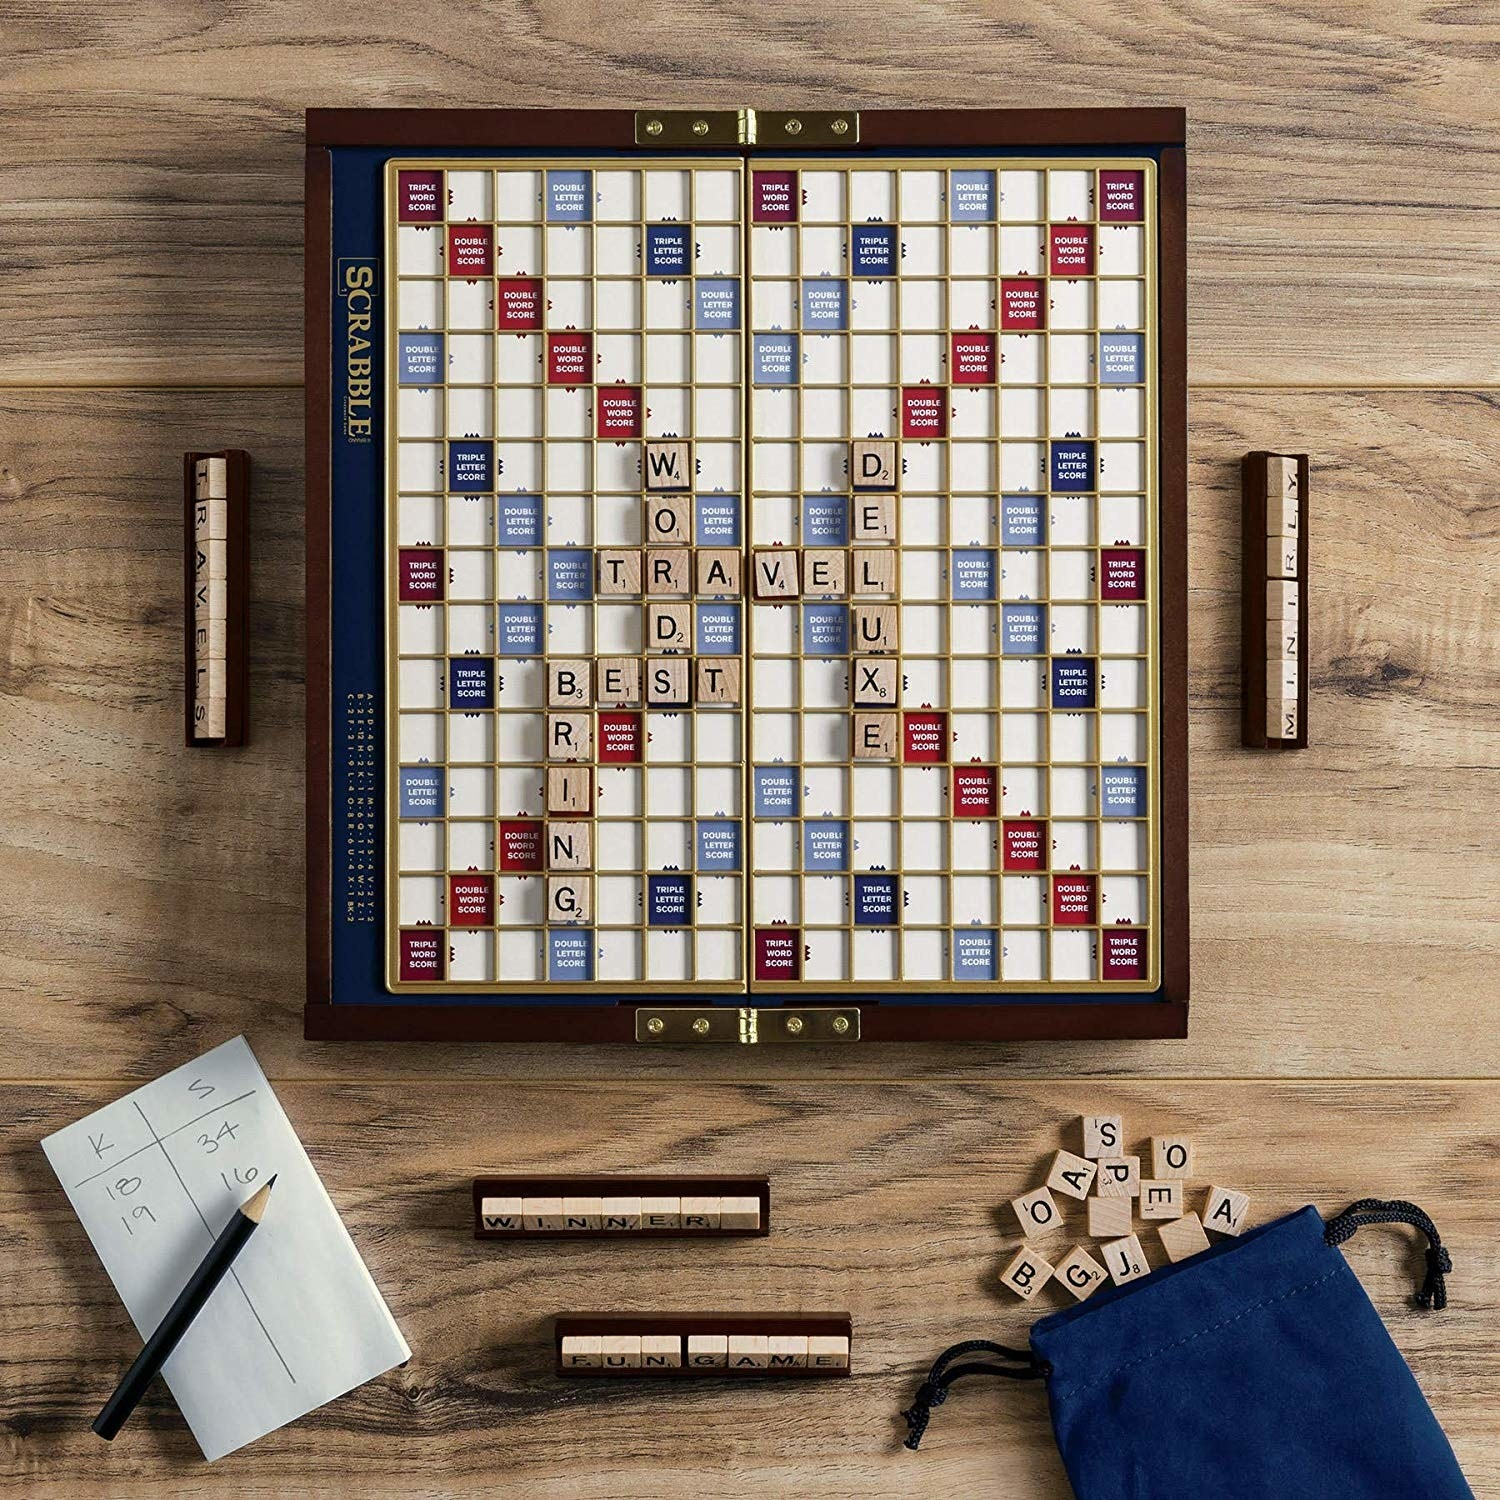 the Scrabble board